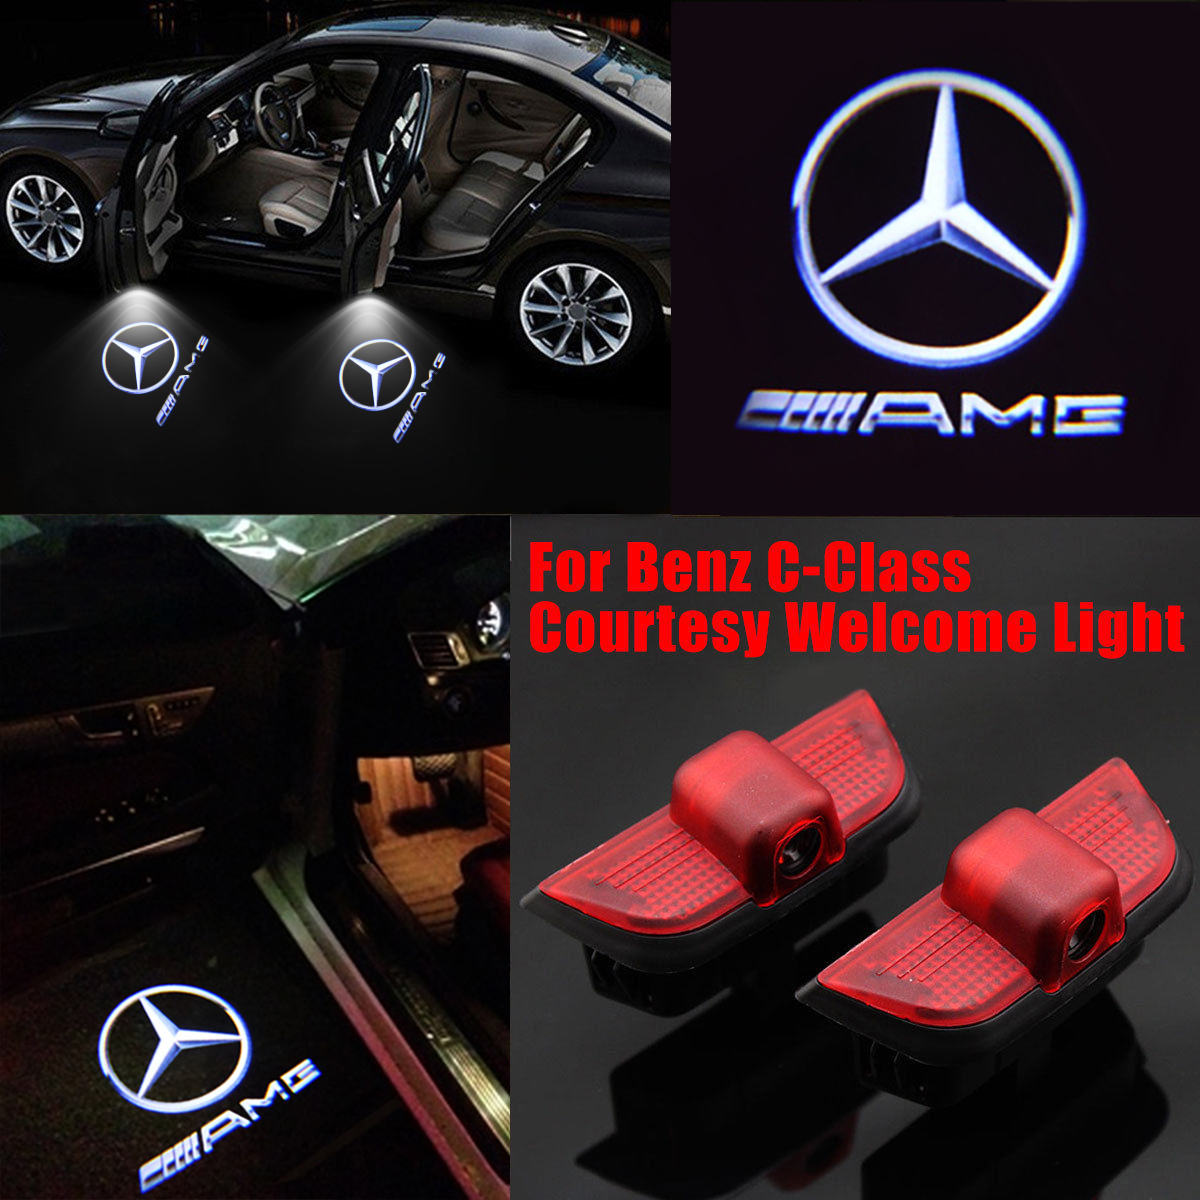 2Pcs Wireless Car Projection Cree LED Projector Door Ghost Shadow Light Benz Logos & 2Pcs Wireless Car Projection Cree LED Projector Door Ghost Shadow ...